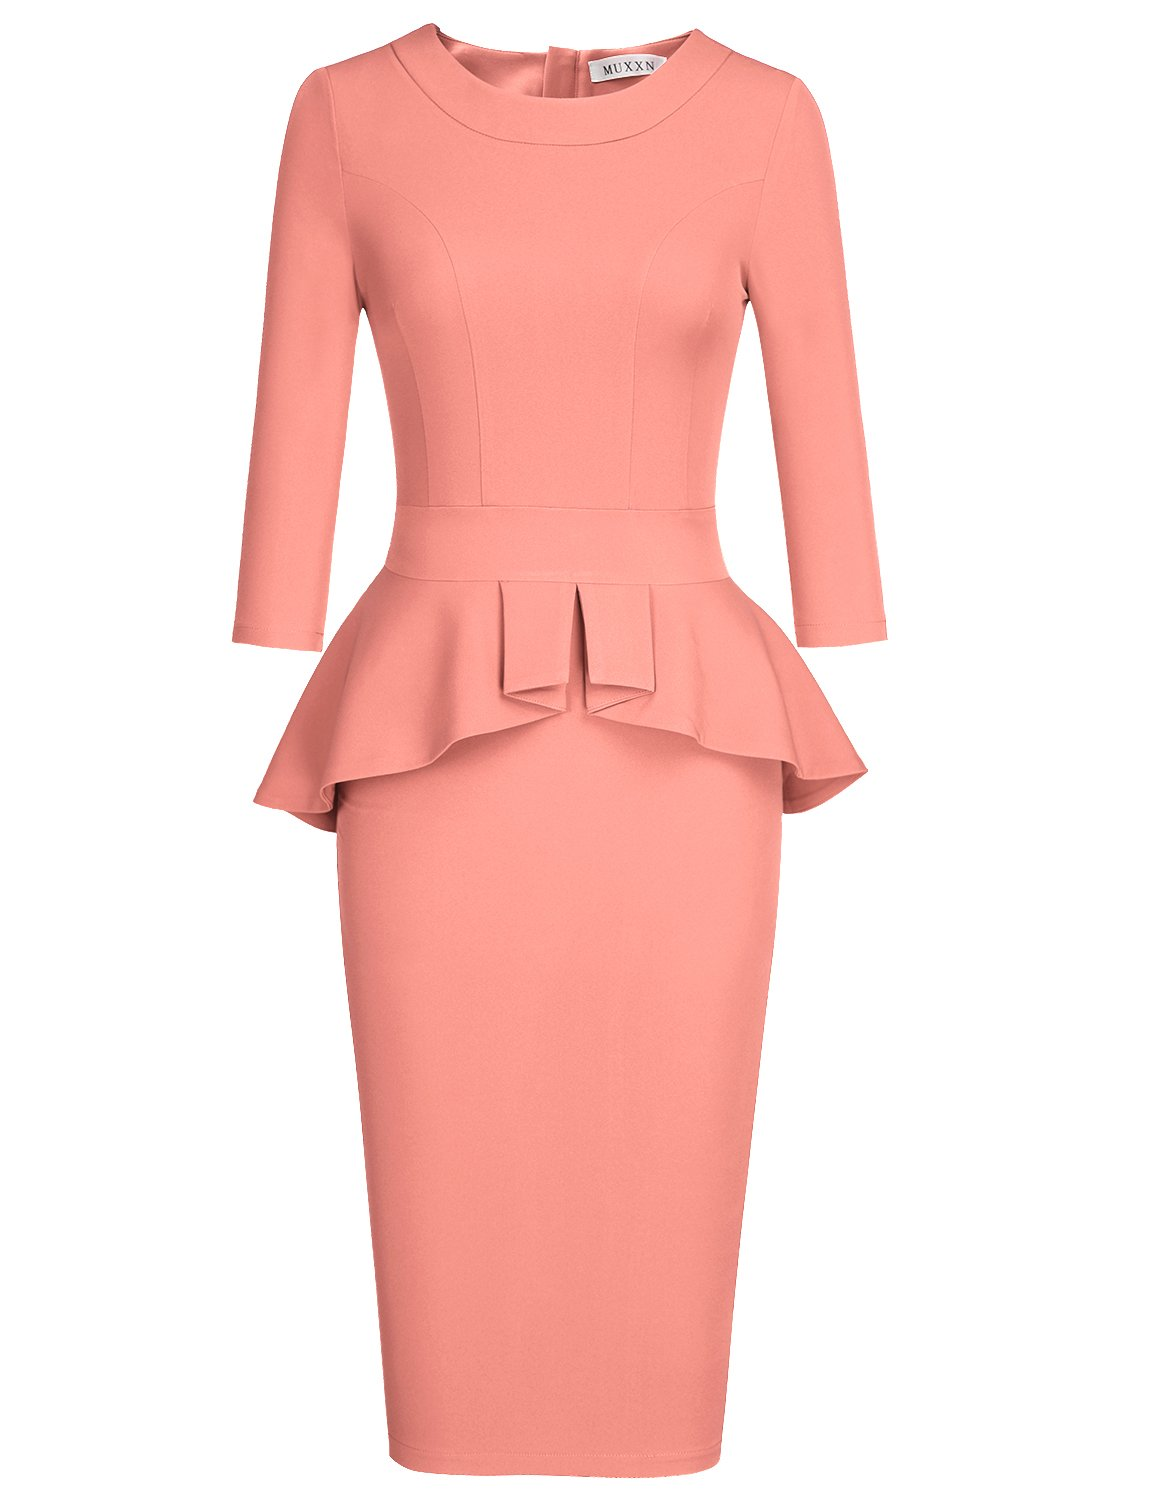 MUXXN Women's Round Neck Pleated Peplum Bodycon Mini Work Pencil Dress (Peach XXL)